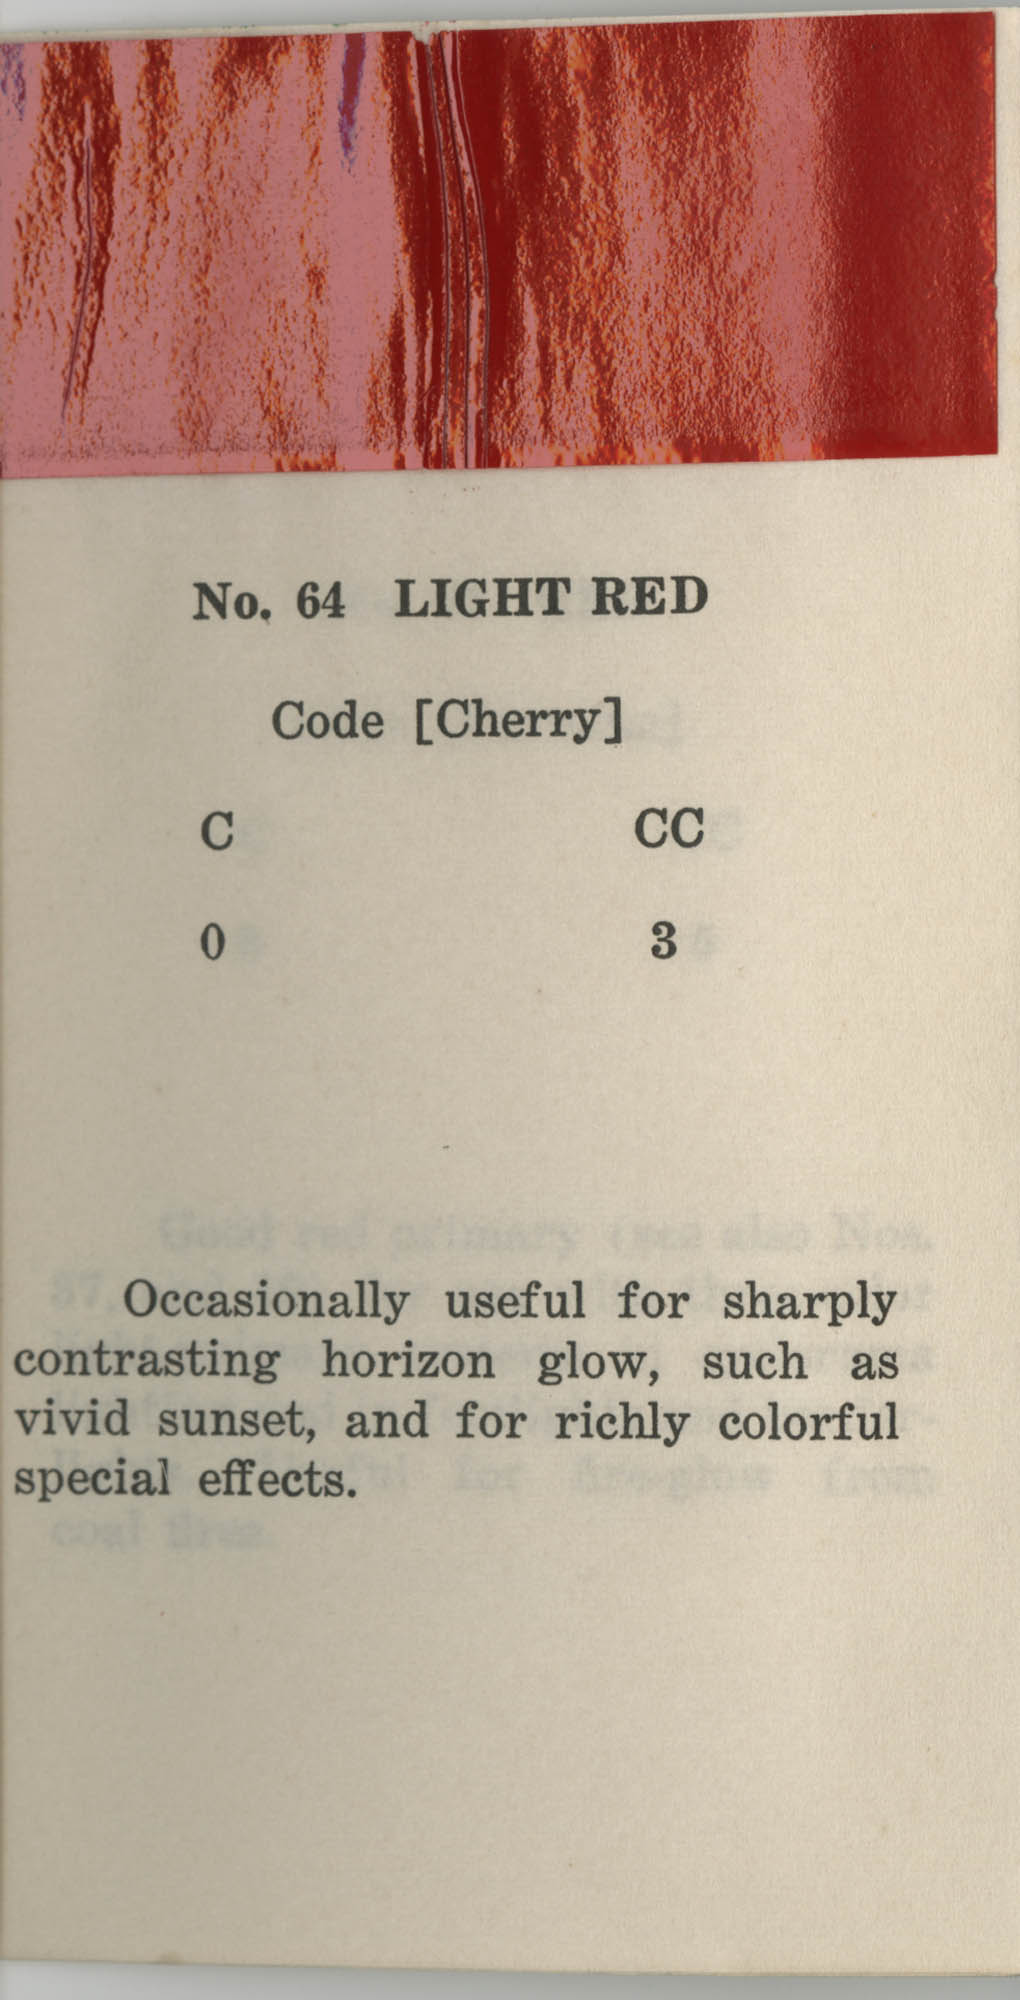 Colored Gelatine for the Theatre School and Community Playhouse, Page 26